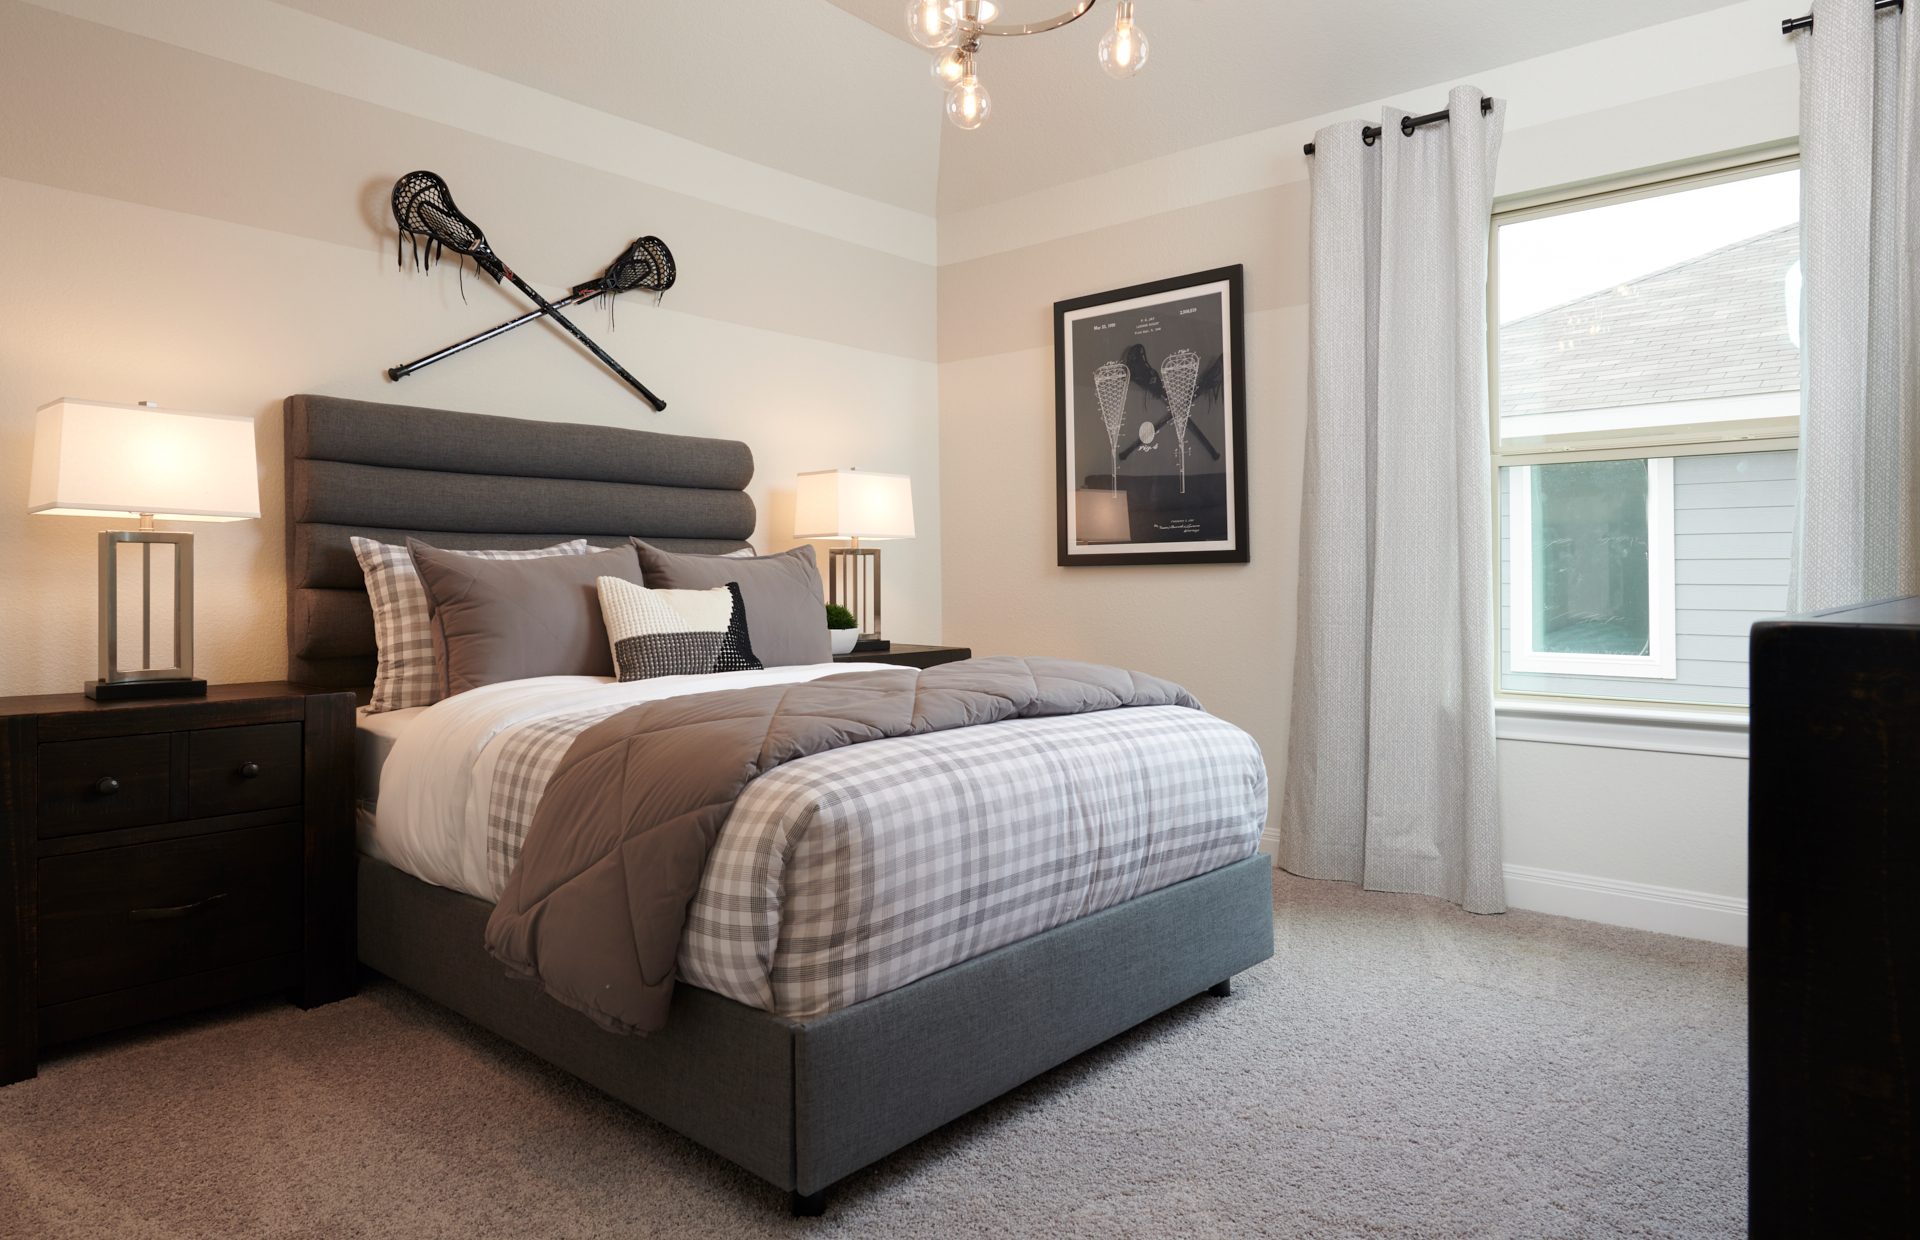 Carmel by Pulte Homes image 7